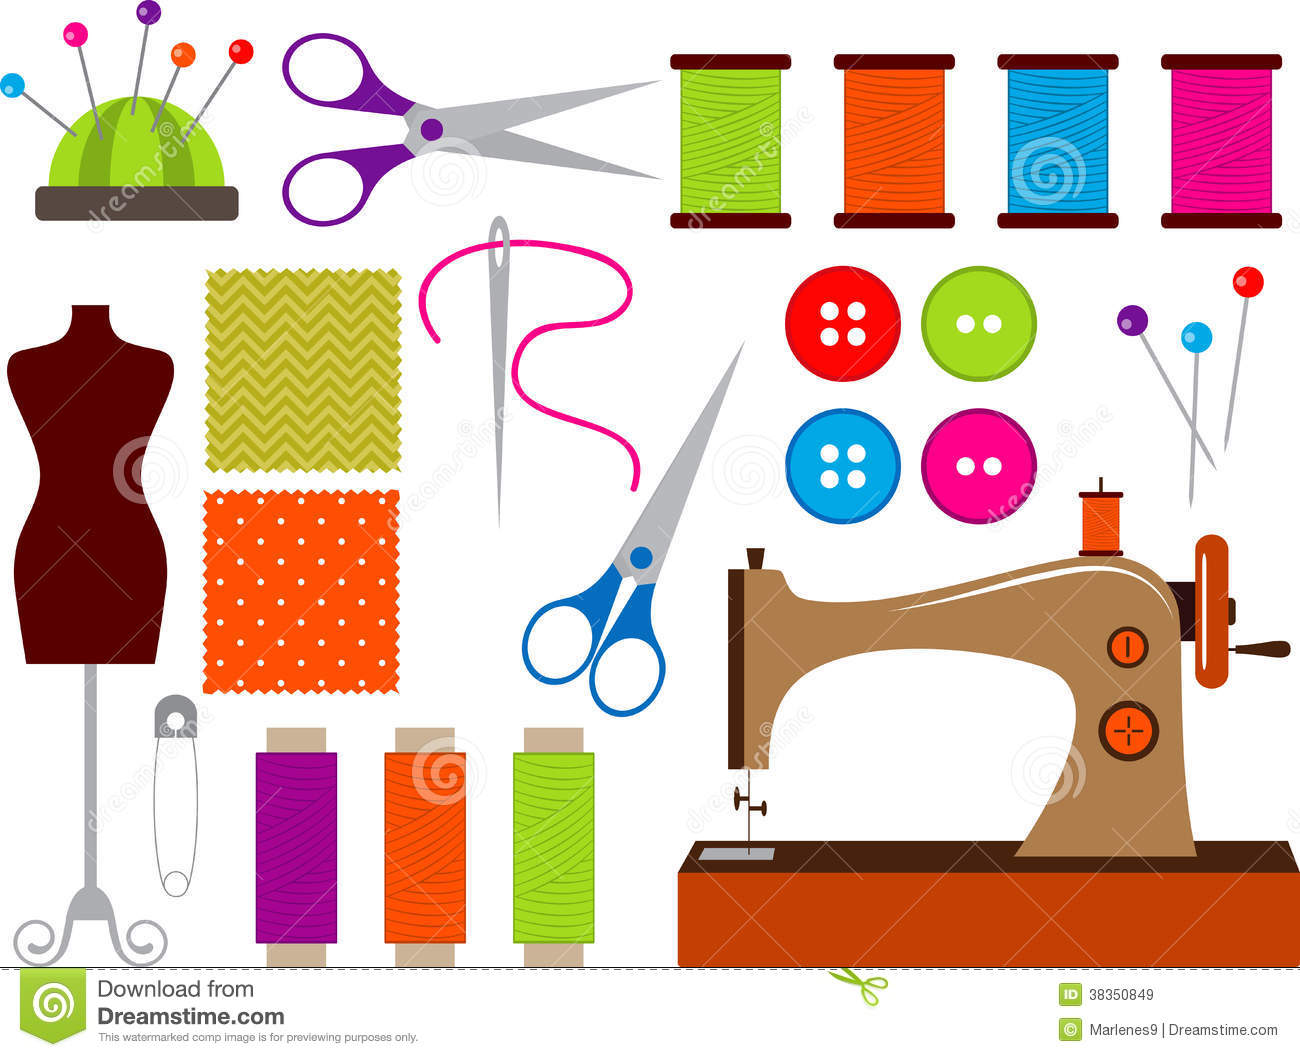 Graphic of tools clipart picture free stock Sewing Tools Clip Art – Clipart Free Download picture free stock